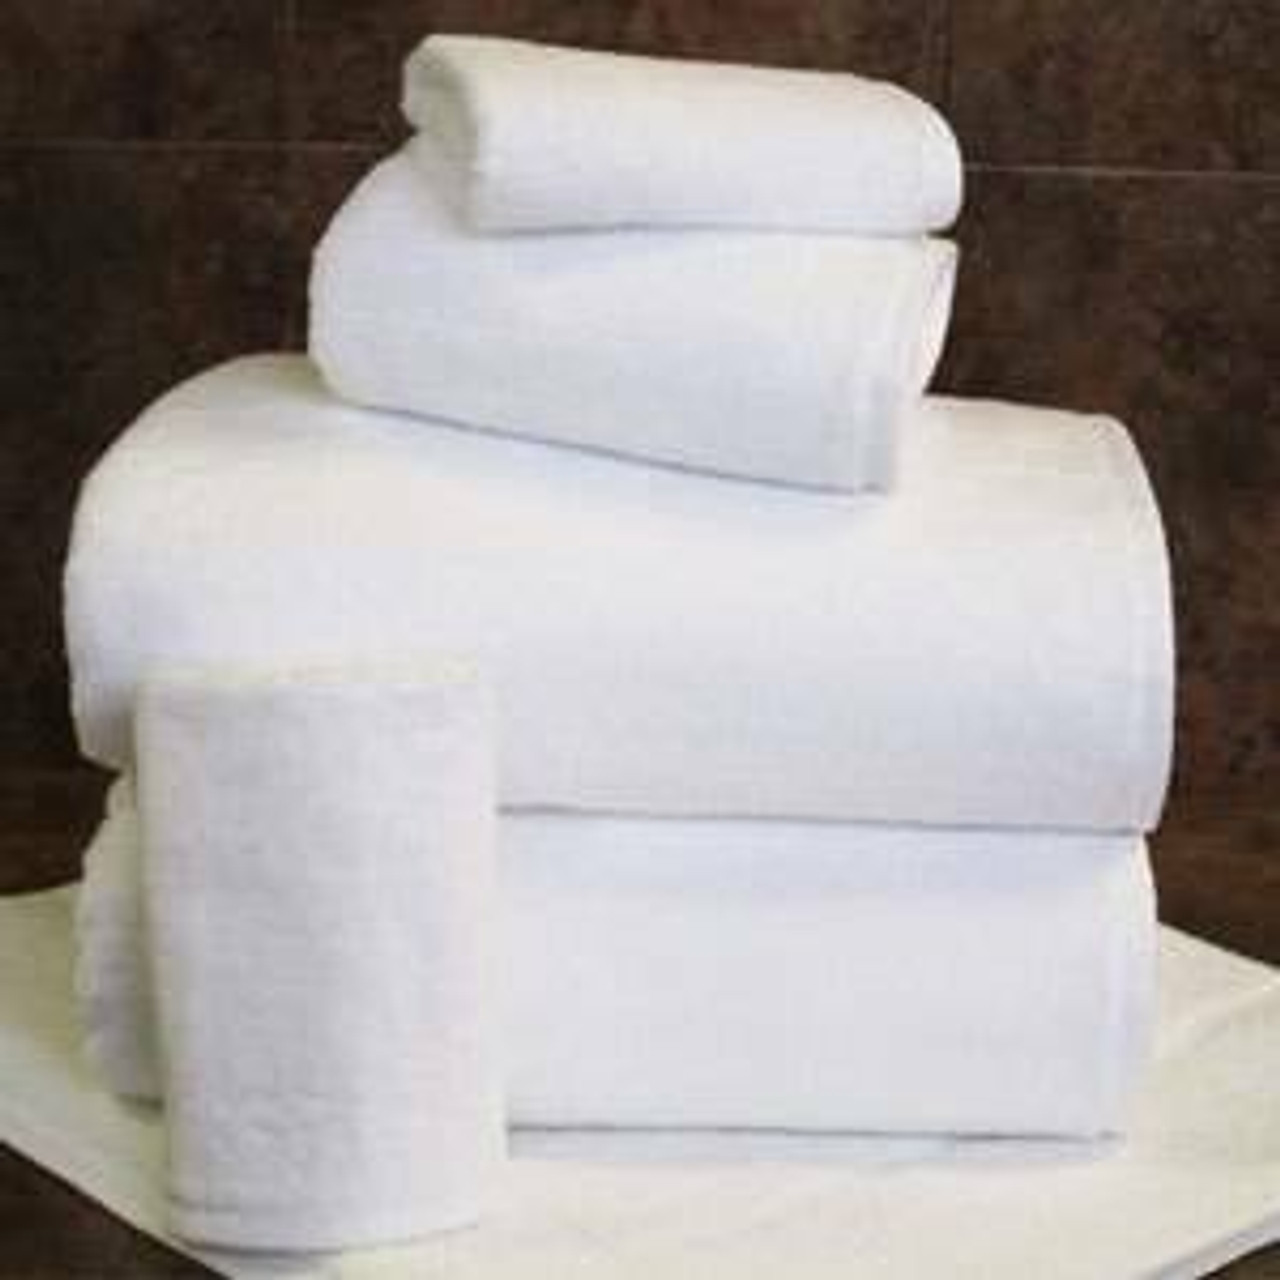 1888 MILLS TOWELS or TRUE COMFORT or RING SPUN or COMBED COTTON